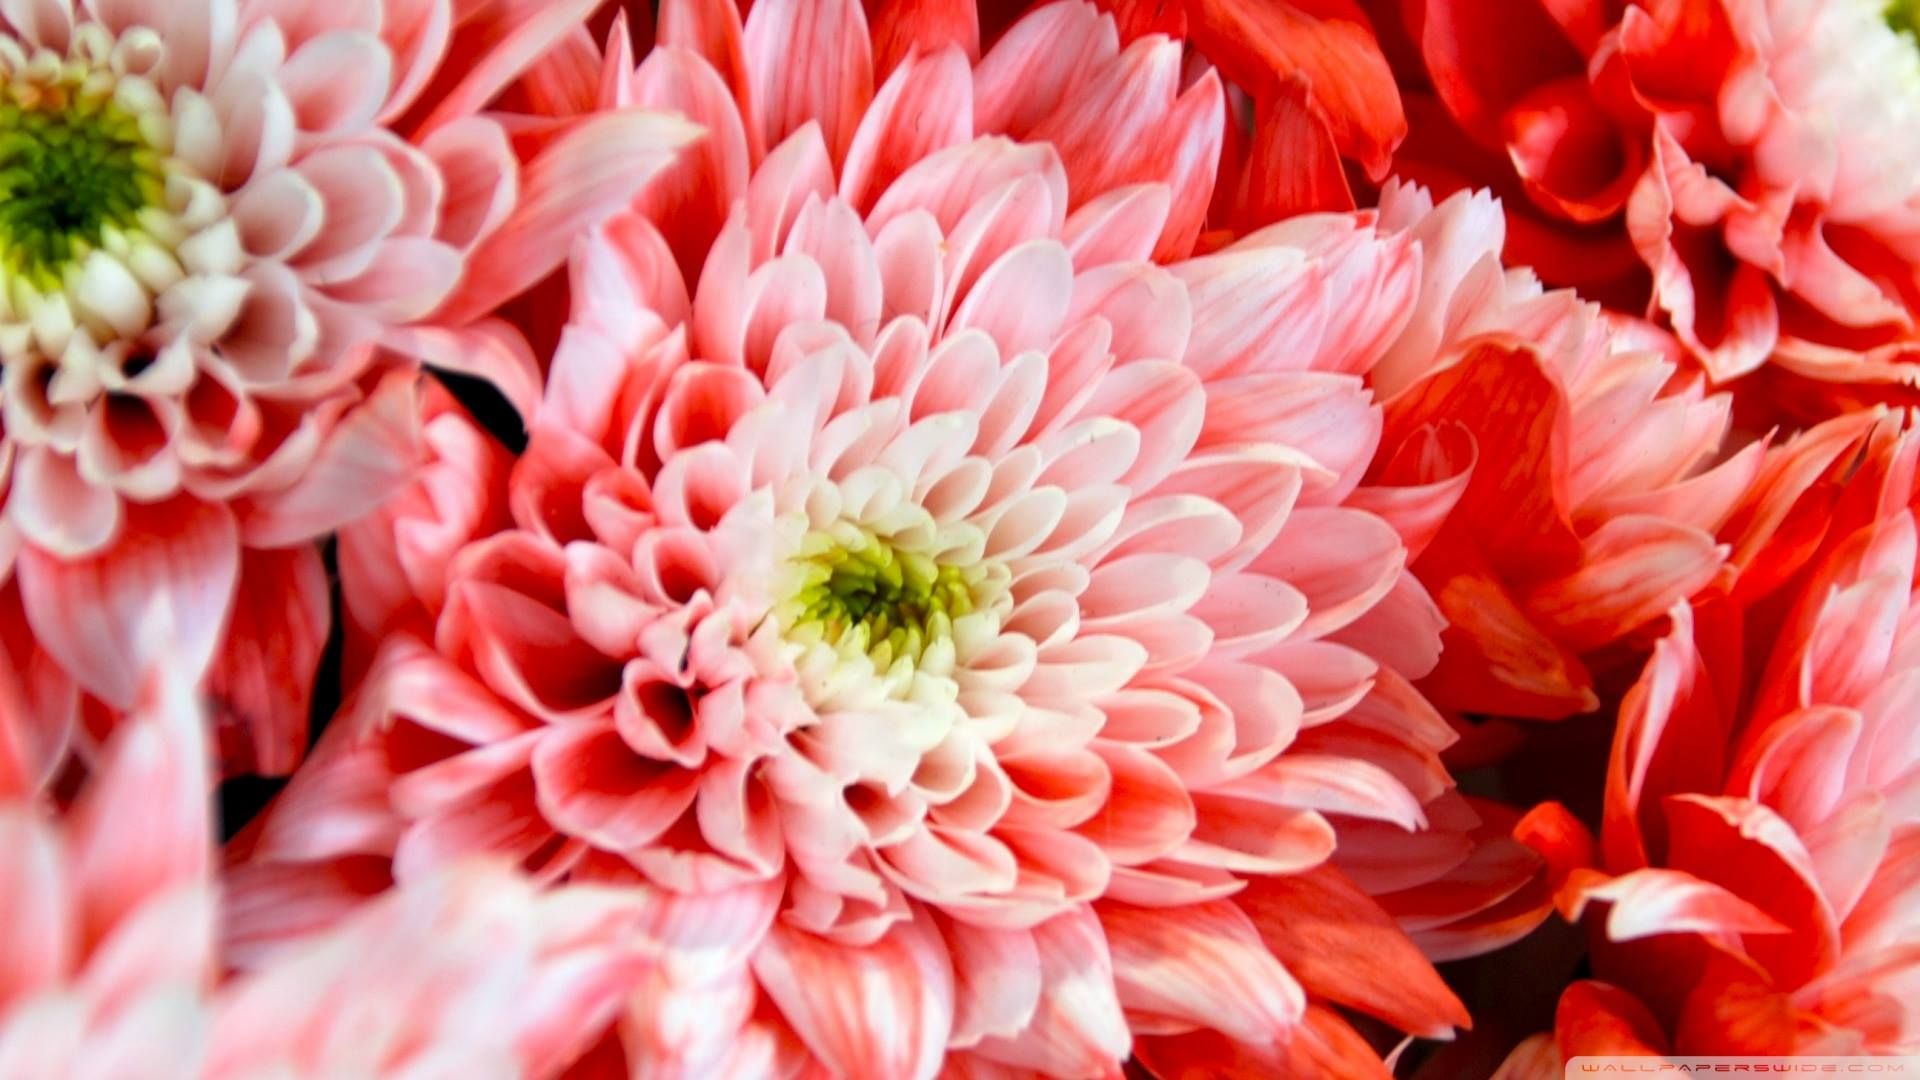 November's birth flower is the Chrysanthemum, which means